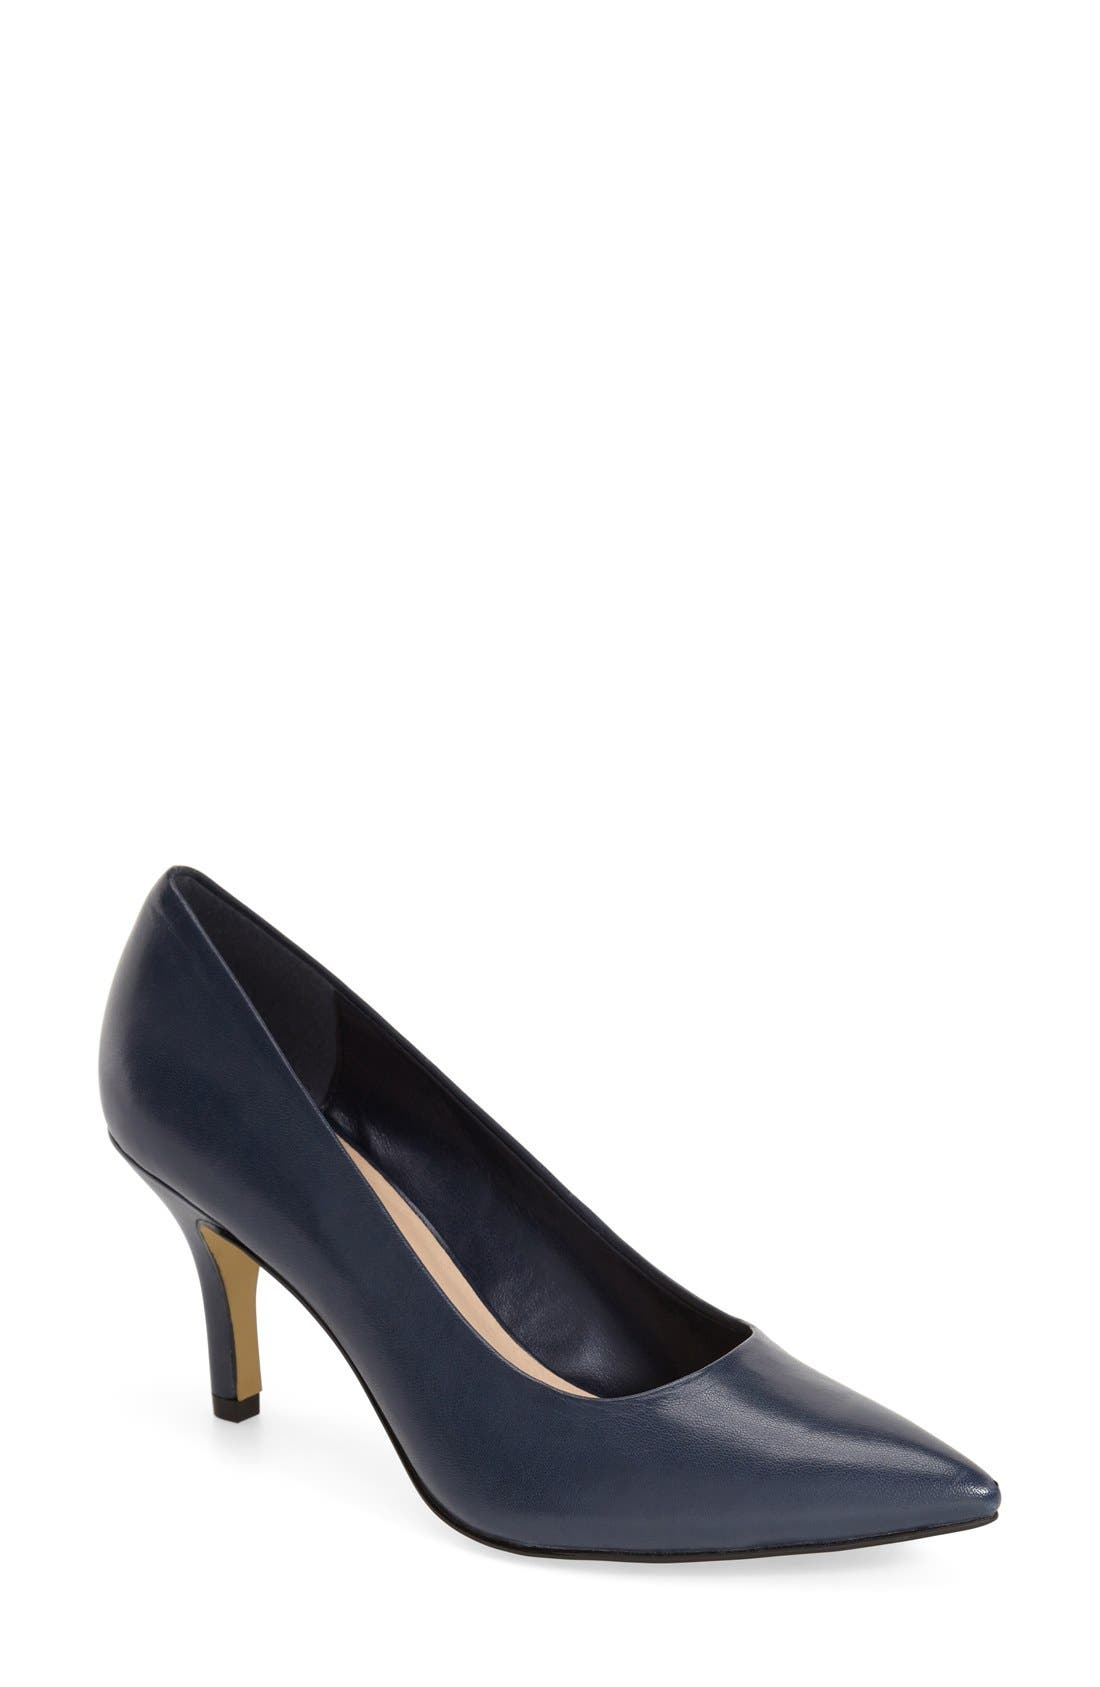 'Define' Pointy Toe Pump,                         Main,                         color, NAVY LEATHER